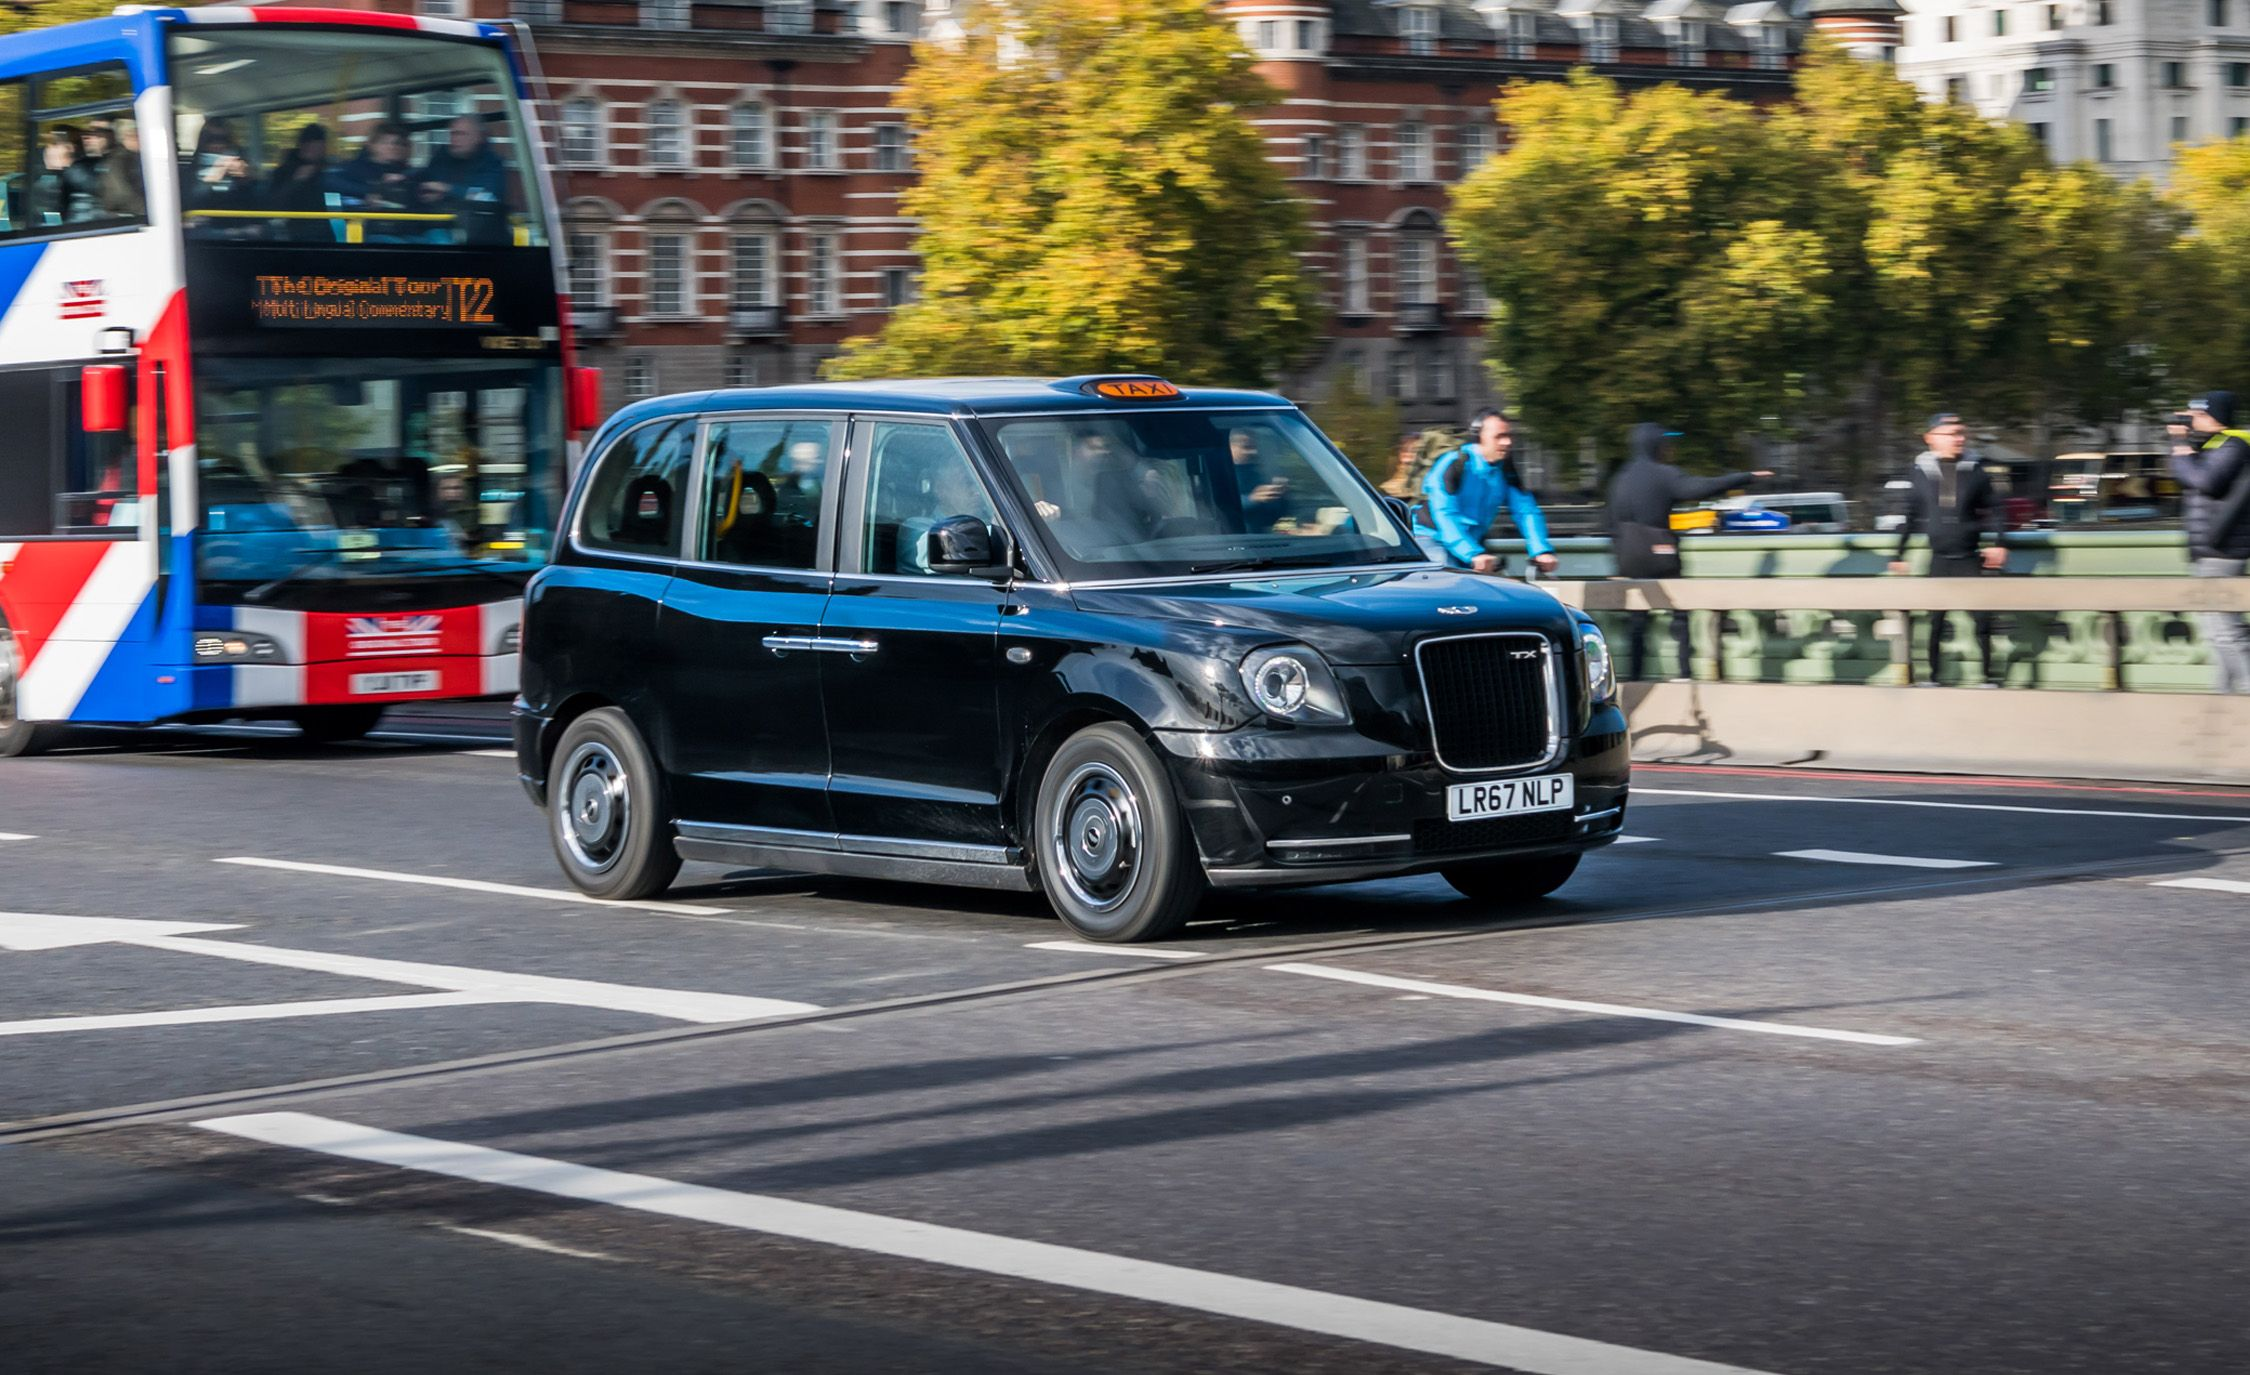 We Drive London's New Electric Taxicab   Review   Car and Driver